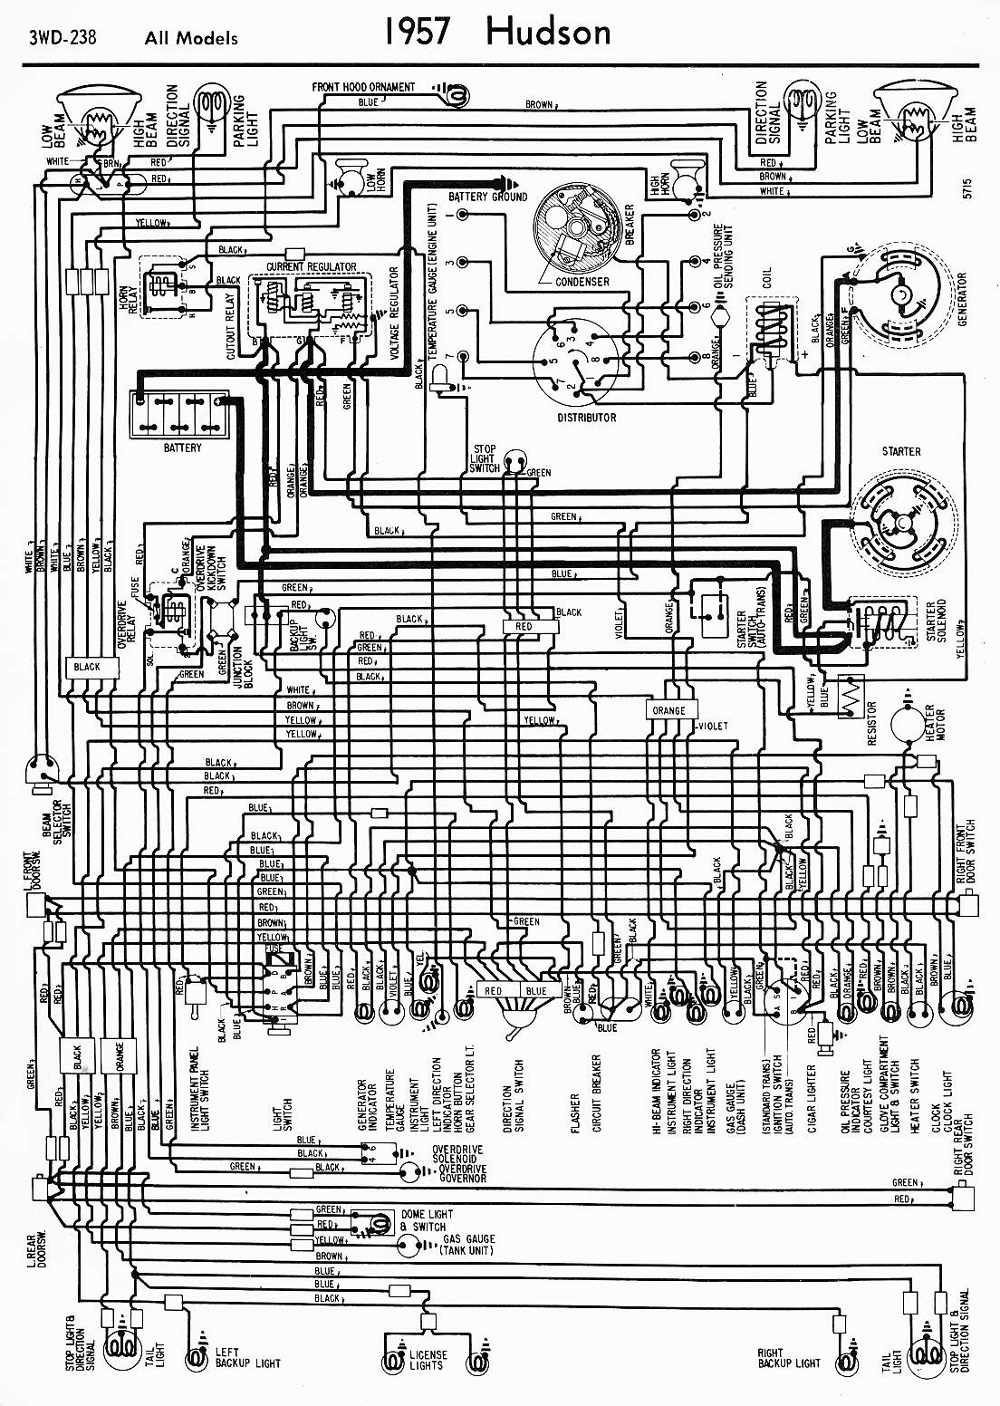 1954 Hudson Wiring Diagram Third Level Chevy Dome Light All Image About And 1951 Data Schema Plymouth